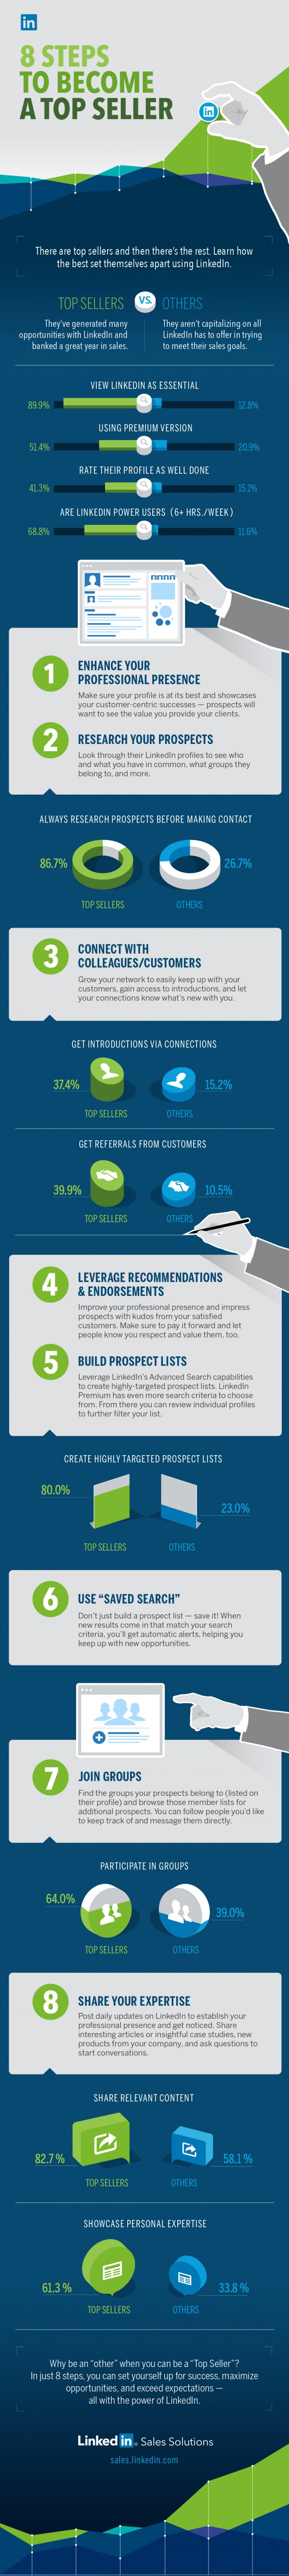 LinkedIn-8-steps-to-become-a-top-seller-infographic